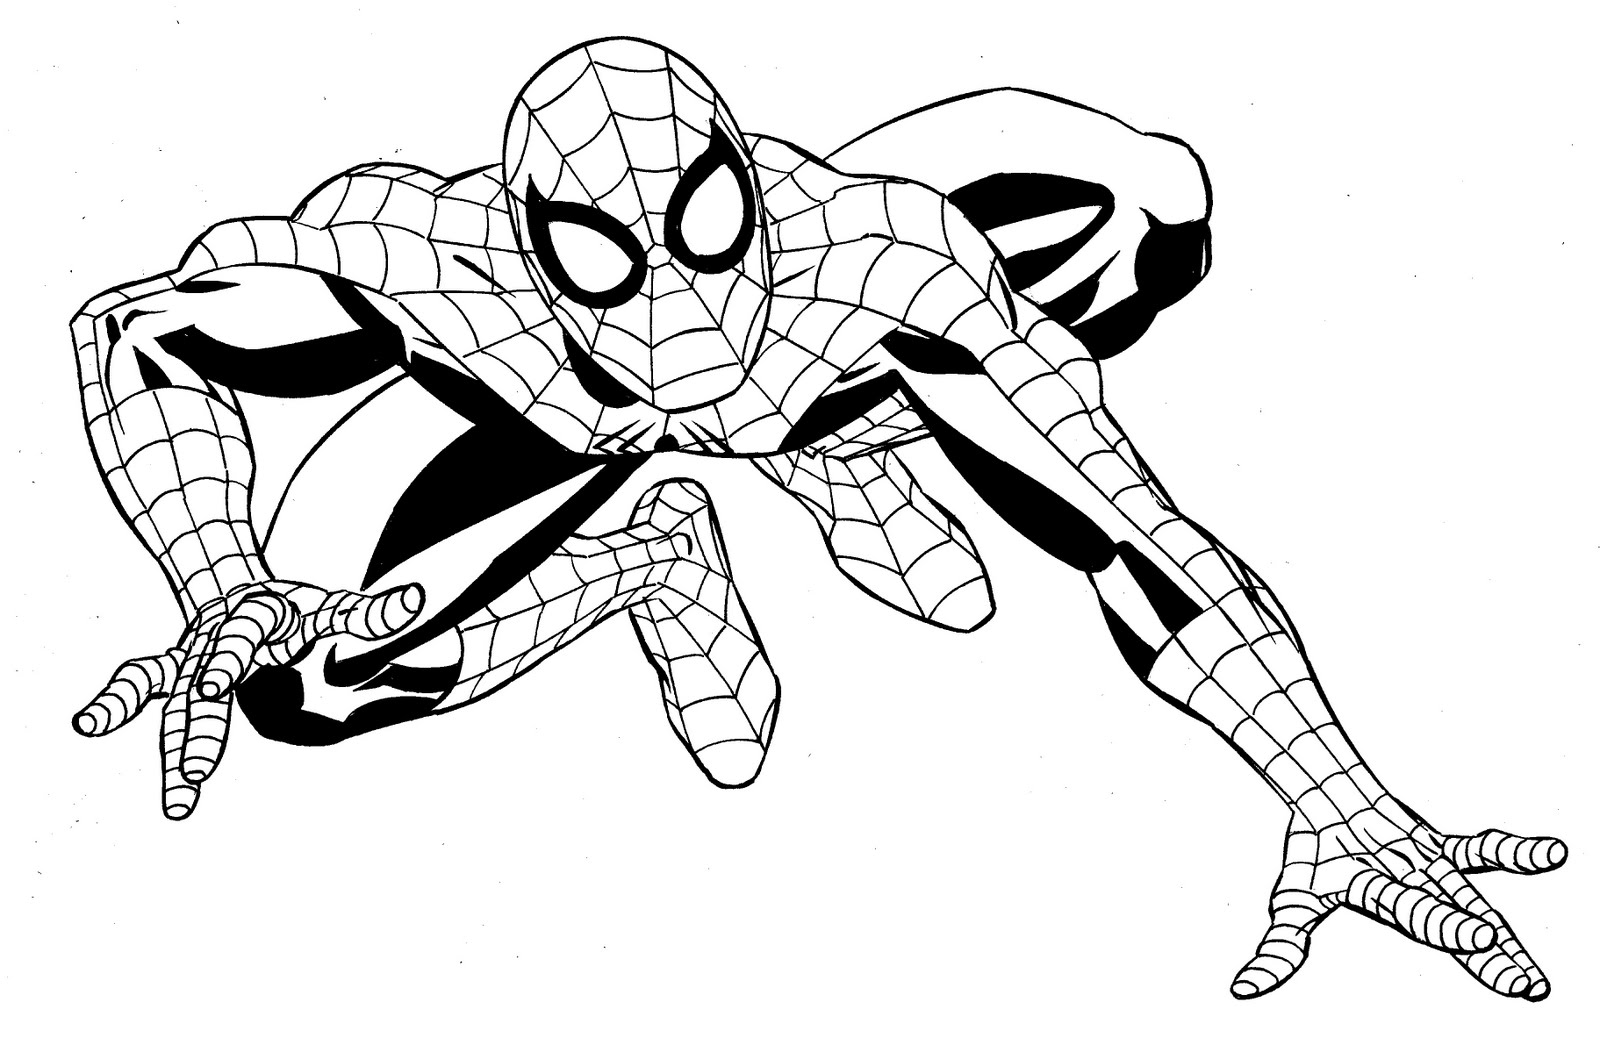 superheroes coloring pages to print - scott koblish october 2011